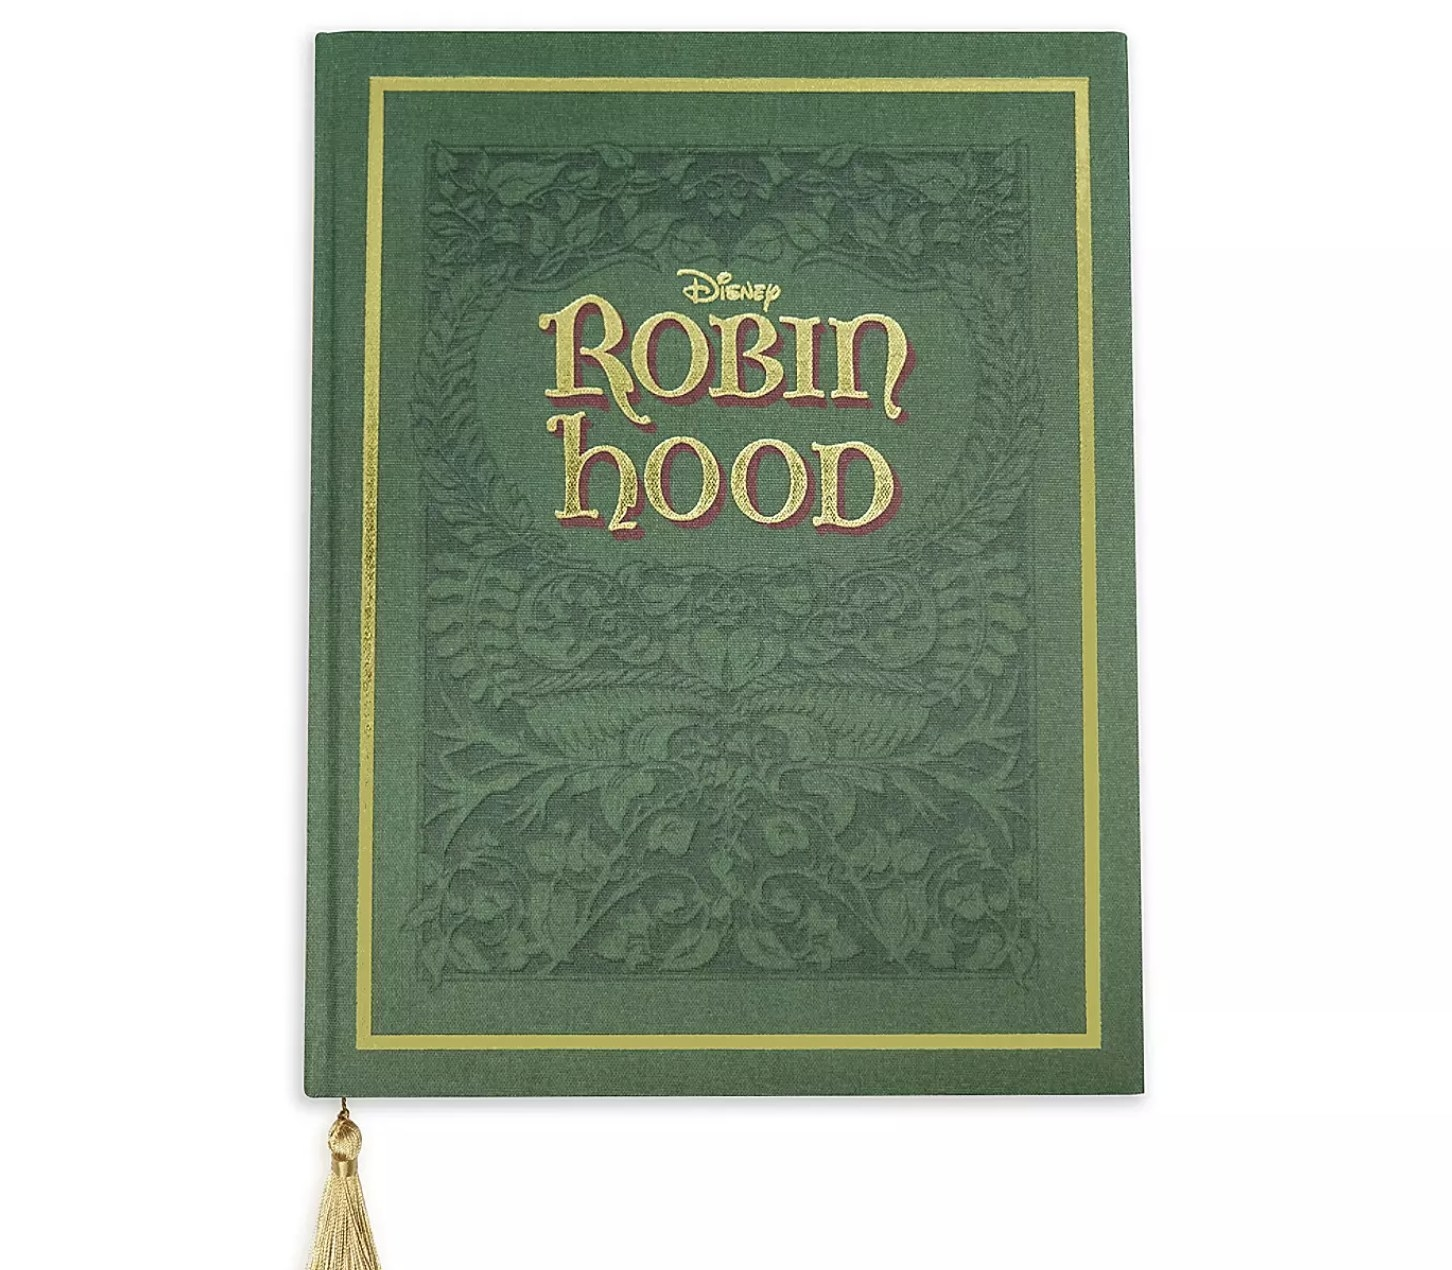 The Robin Hood journal